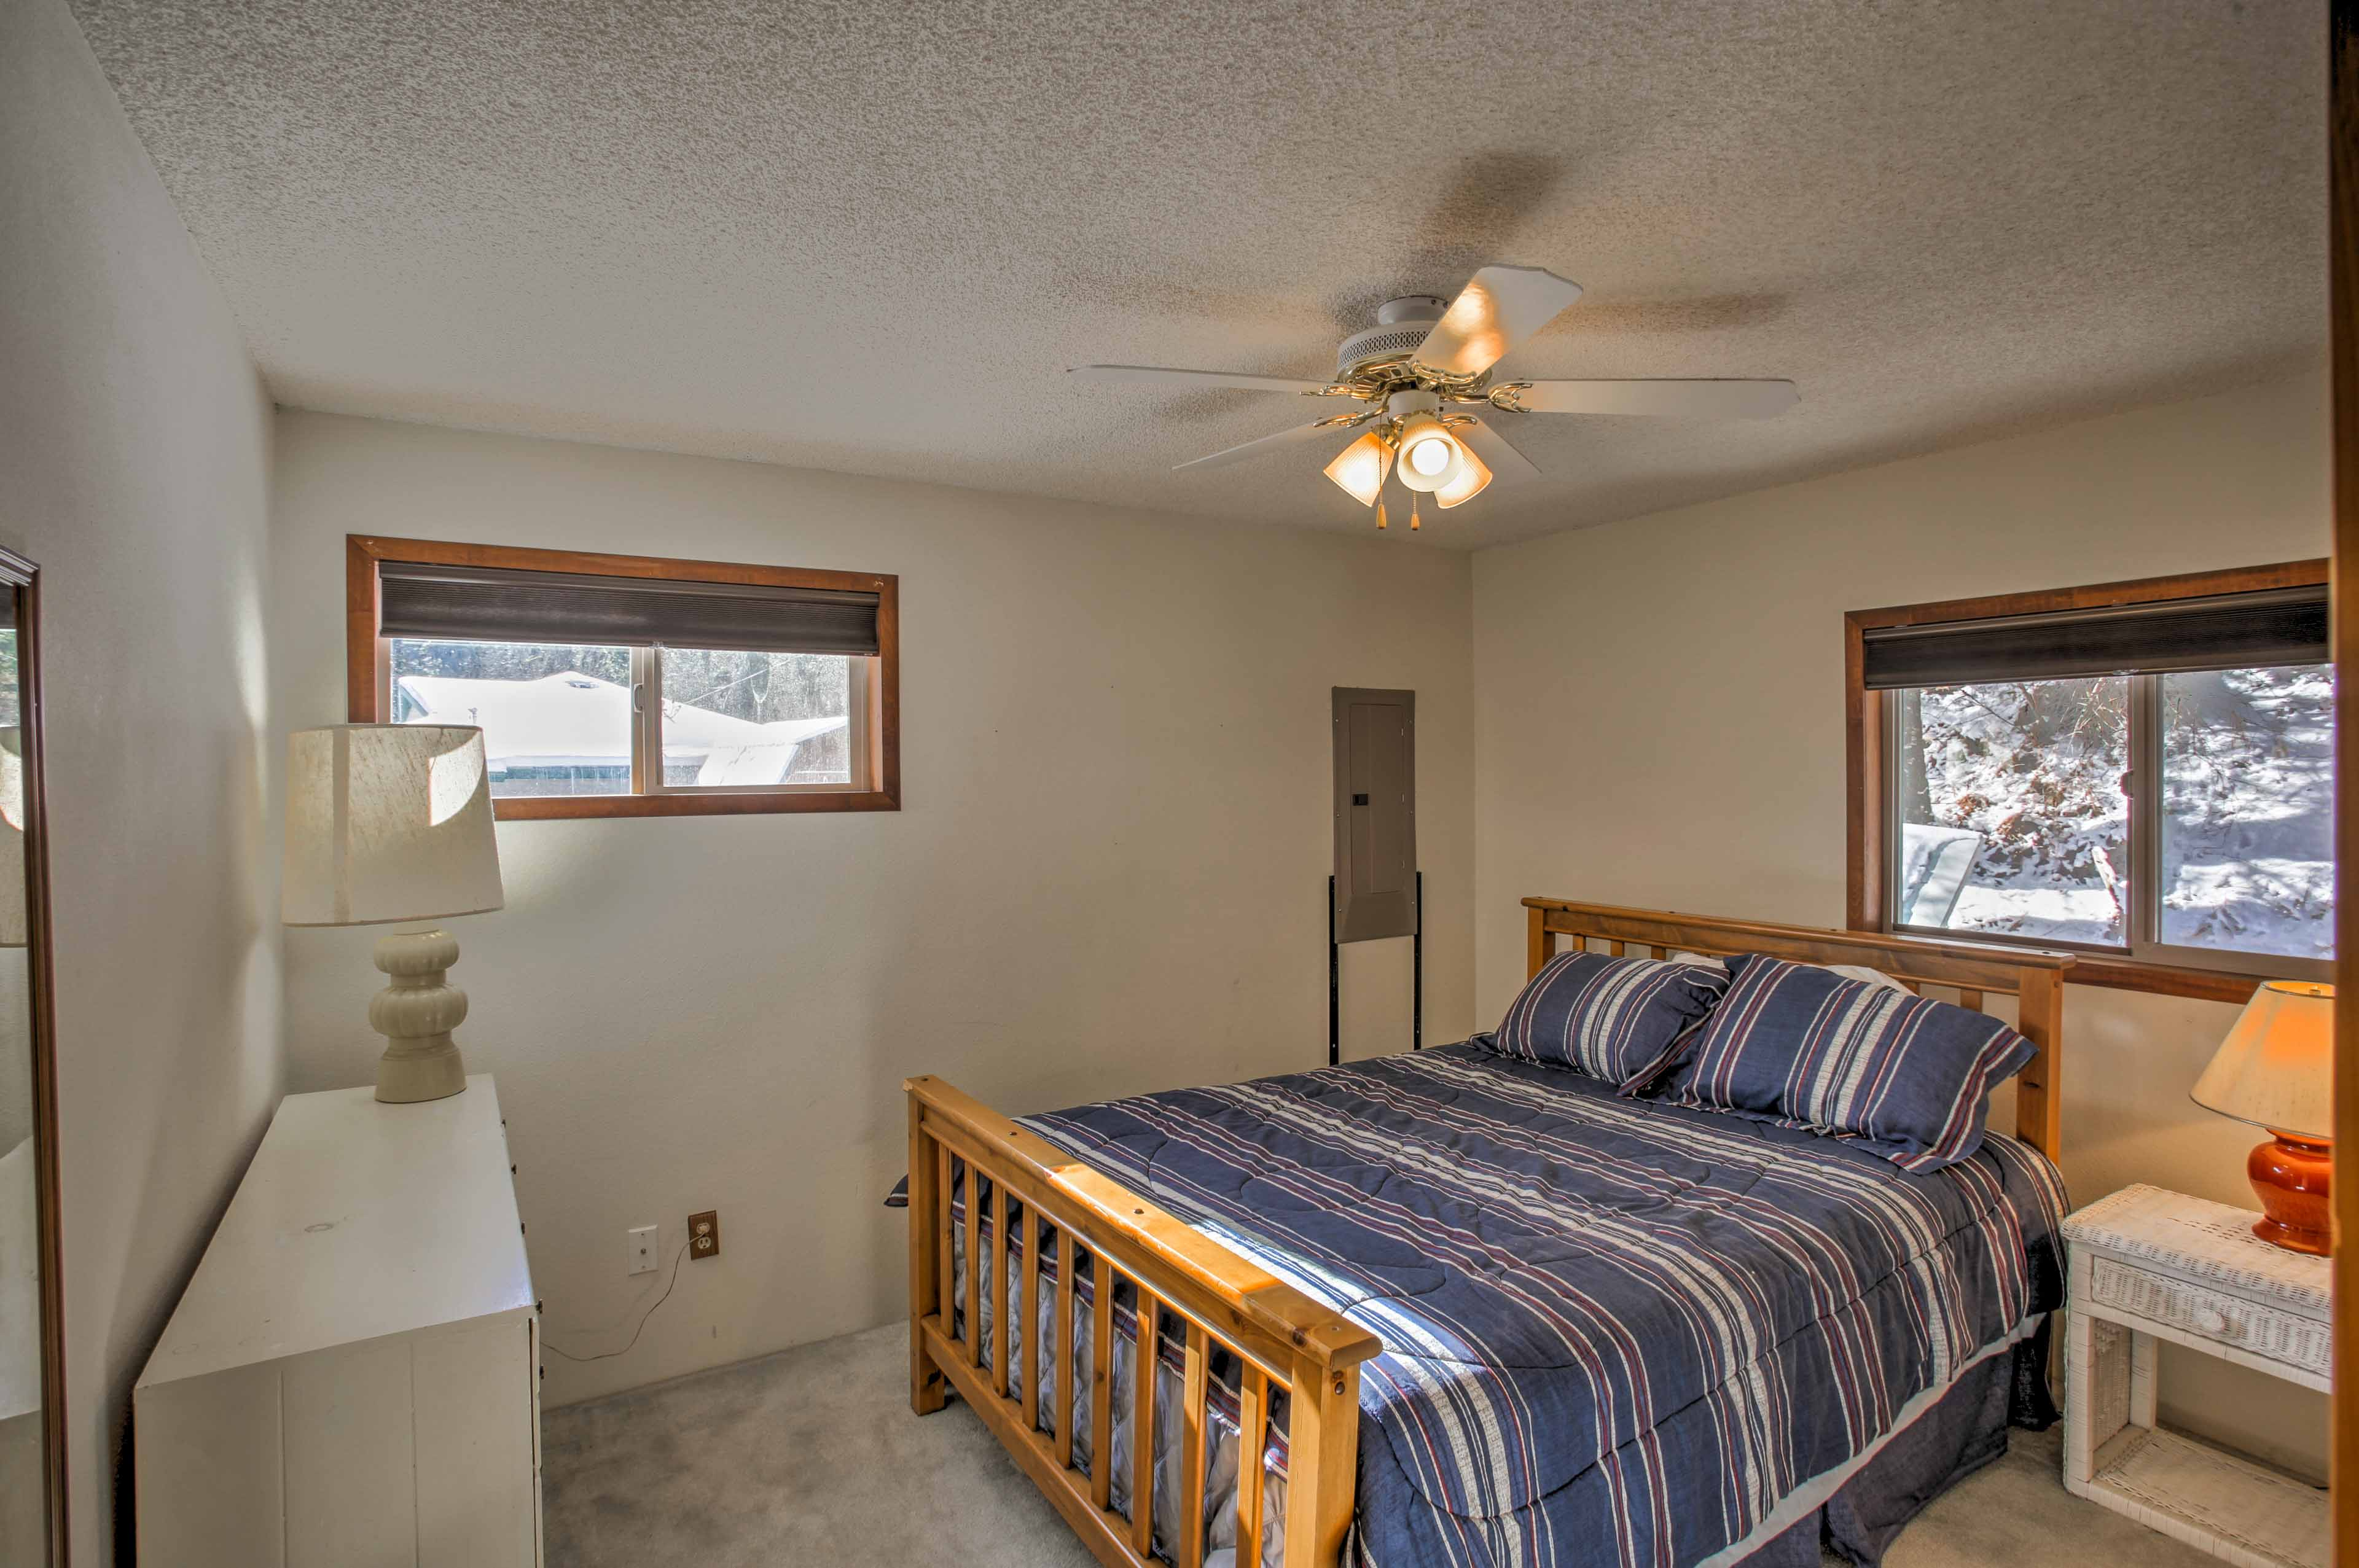 Sleep peacefully in this cozy bedroom with a queen bed.